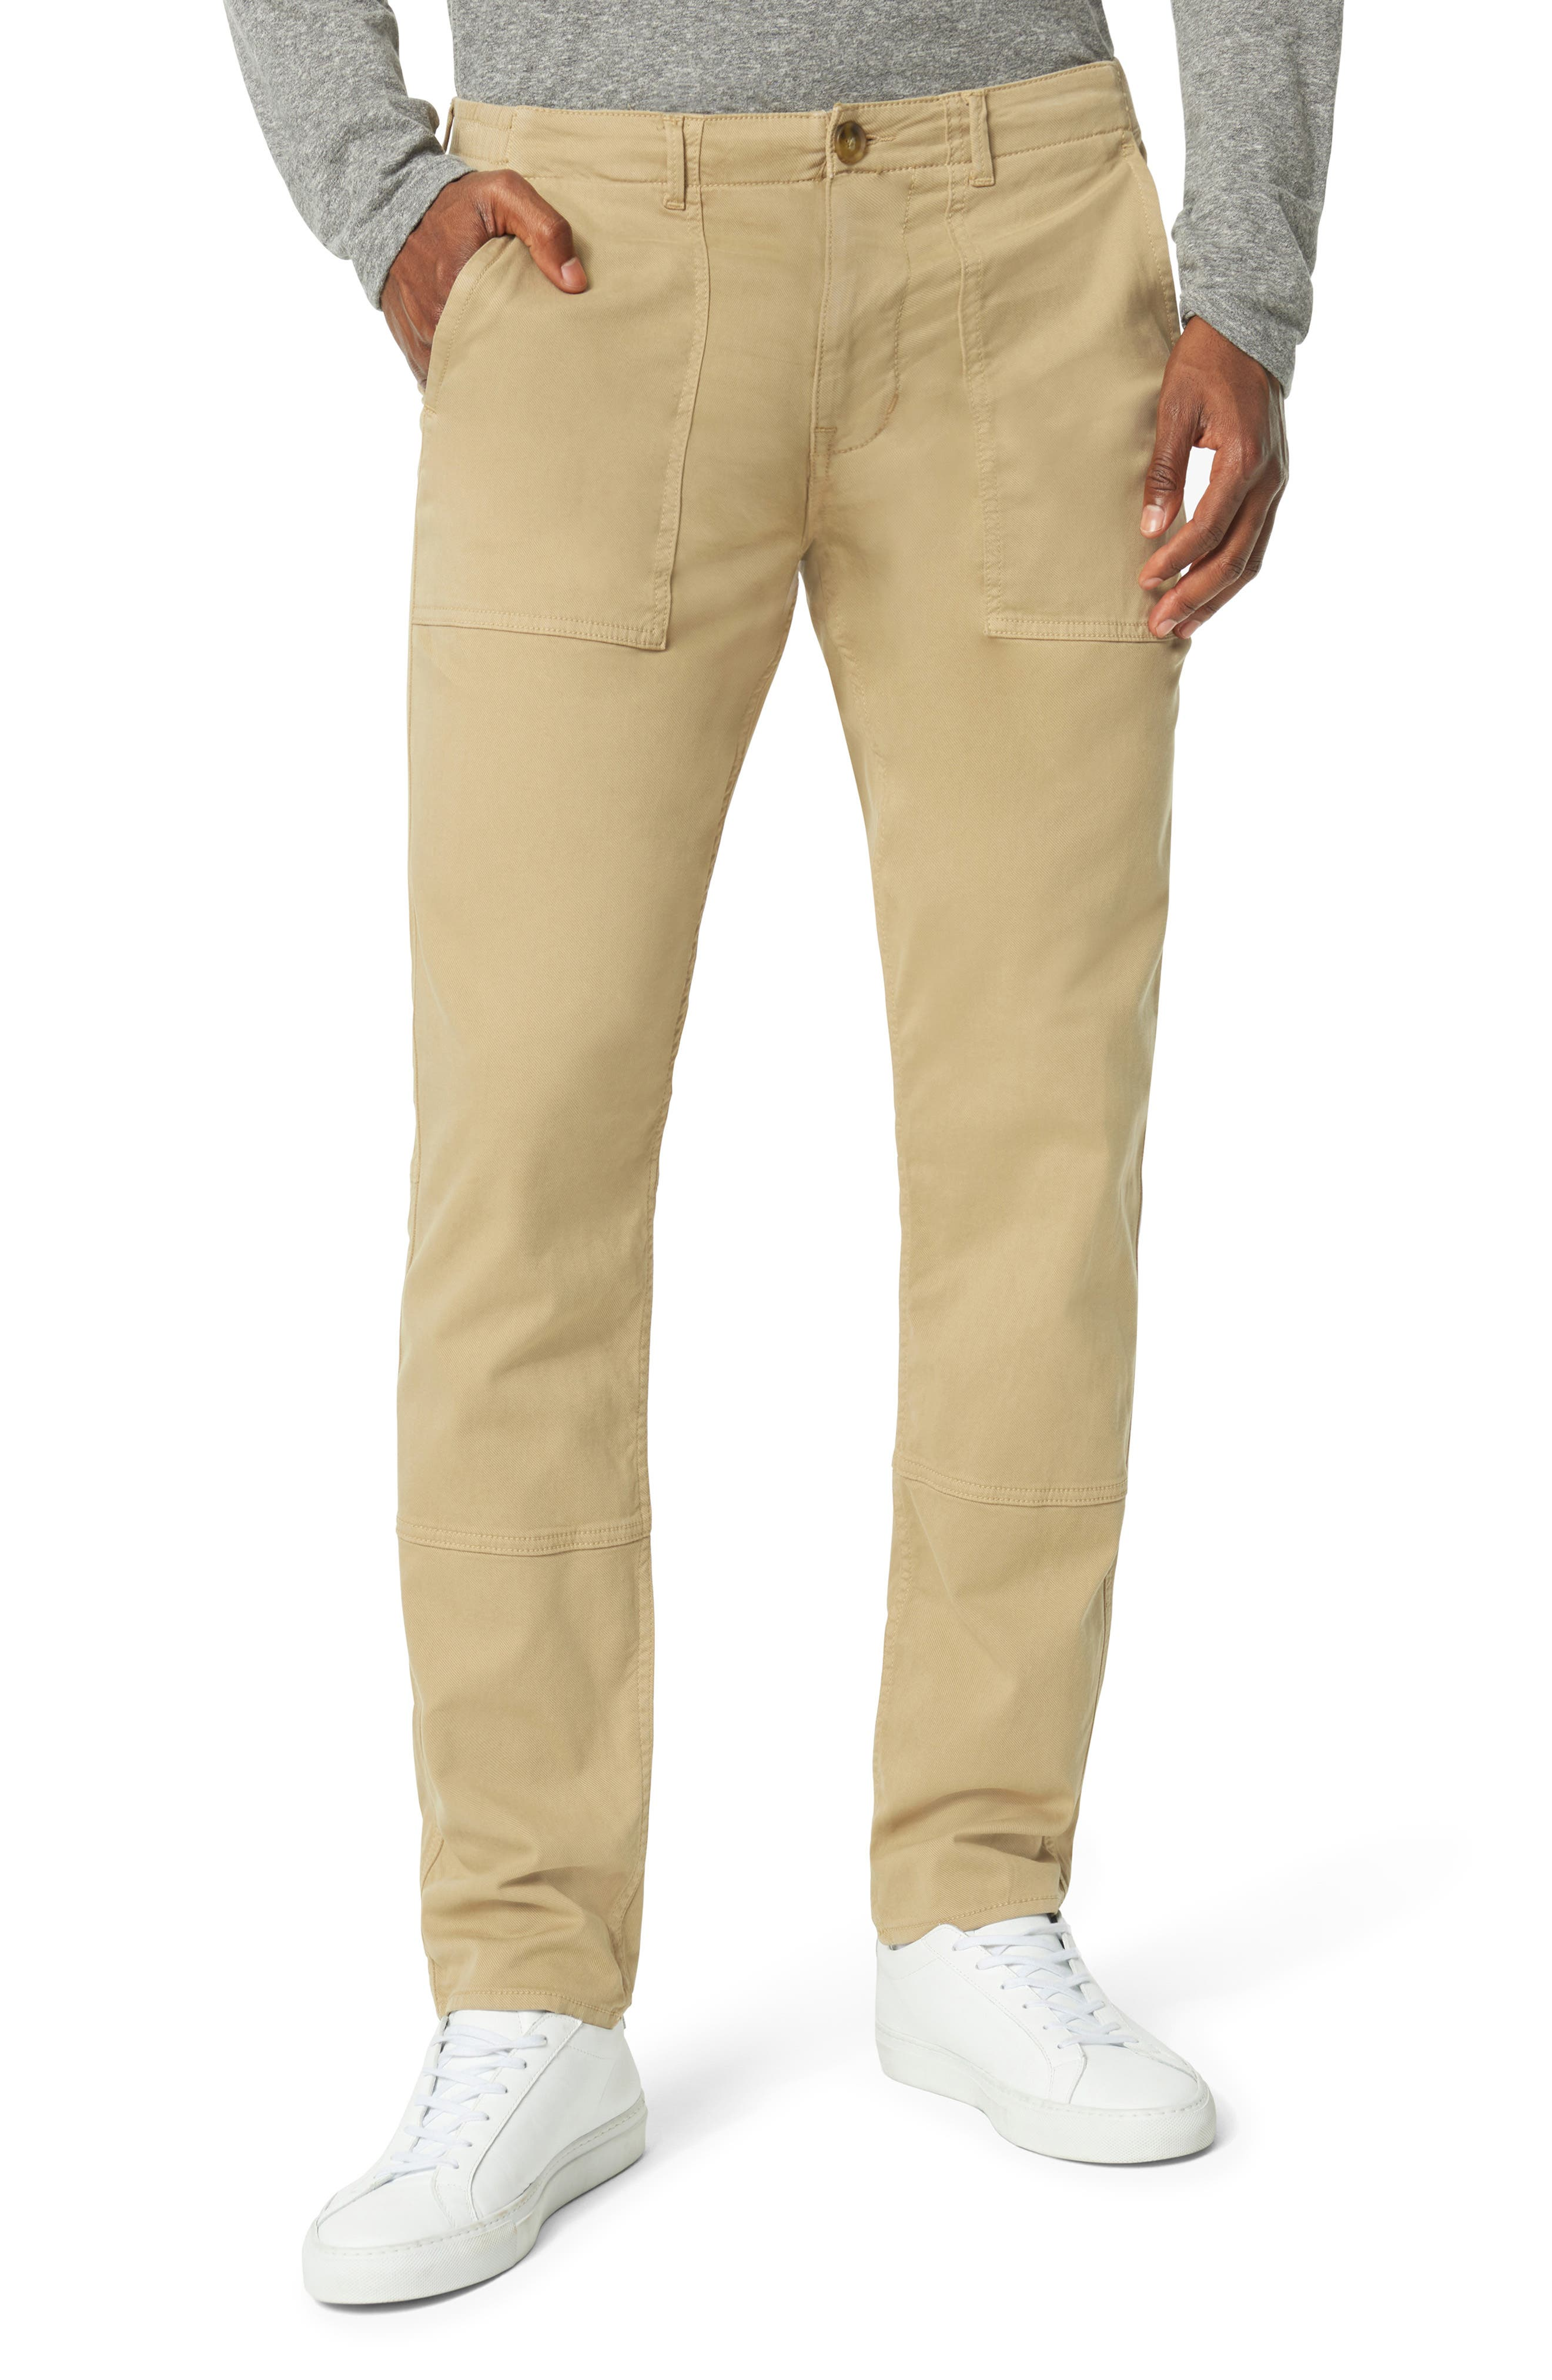 Image of Joe's Jeans Slim Fit Utility Trousers